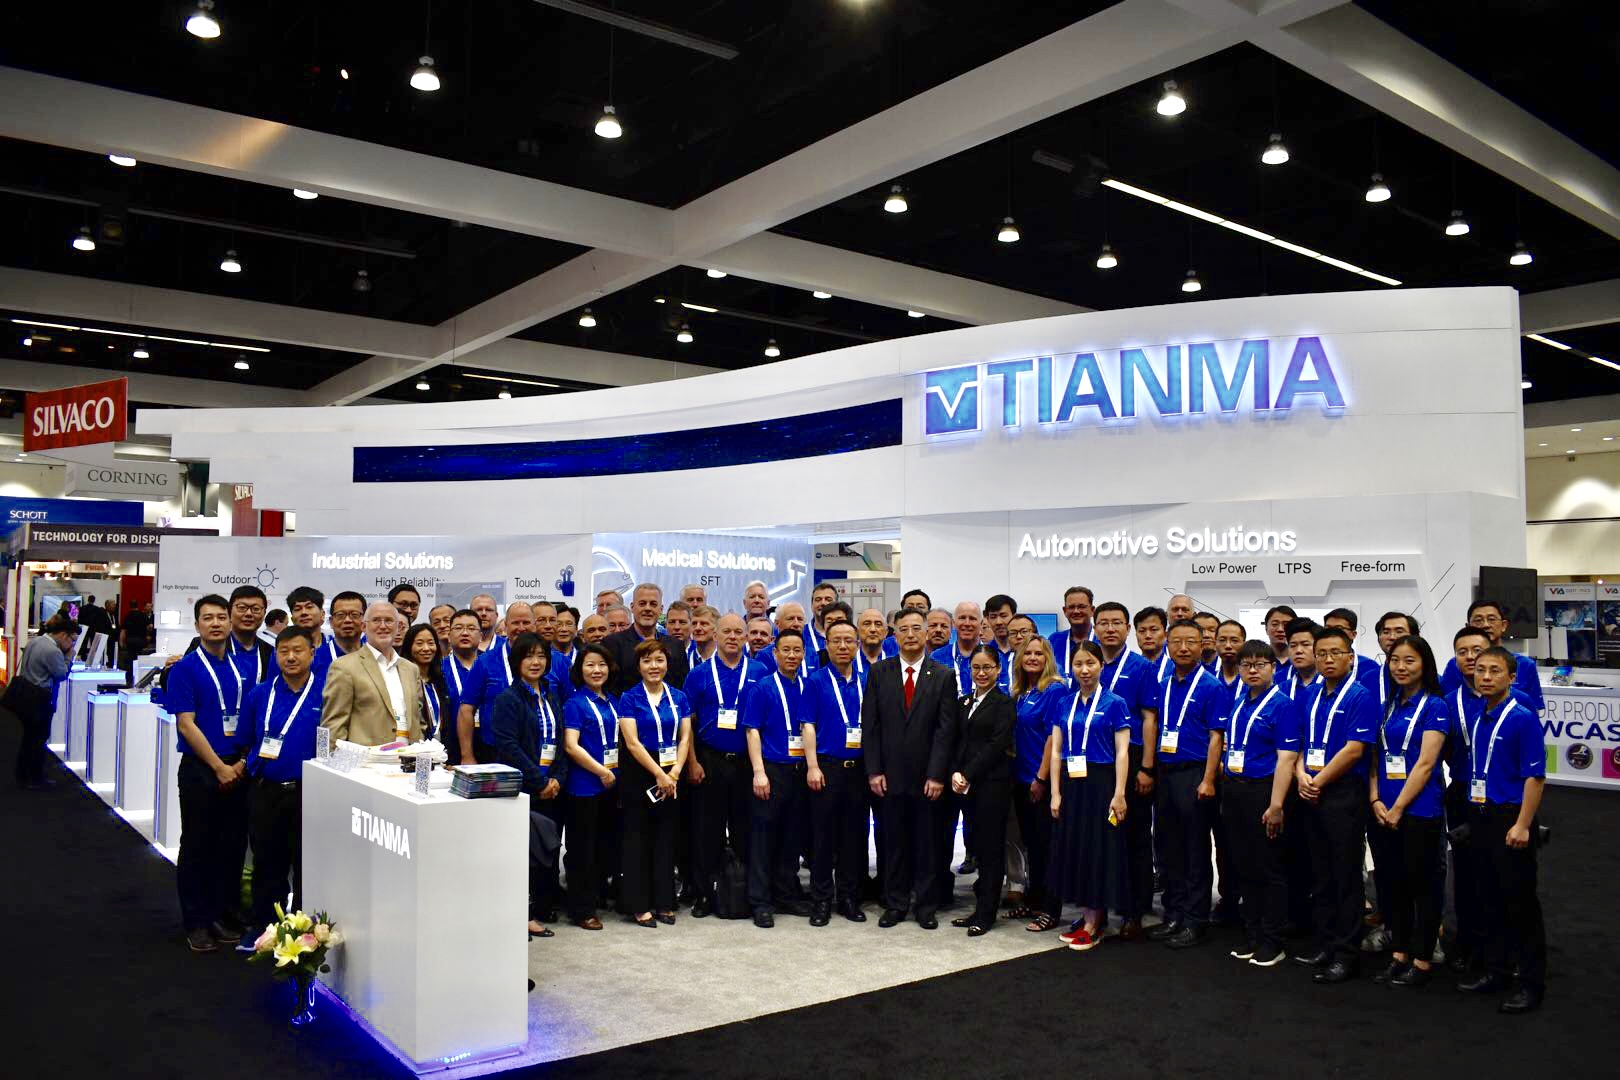 Tianma New Releases Made a Stunning Debut to the 2 World at SID 2018